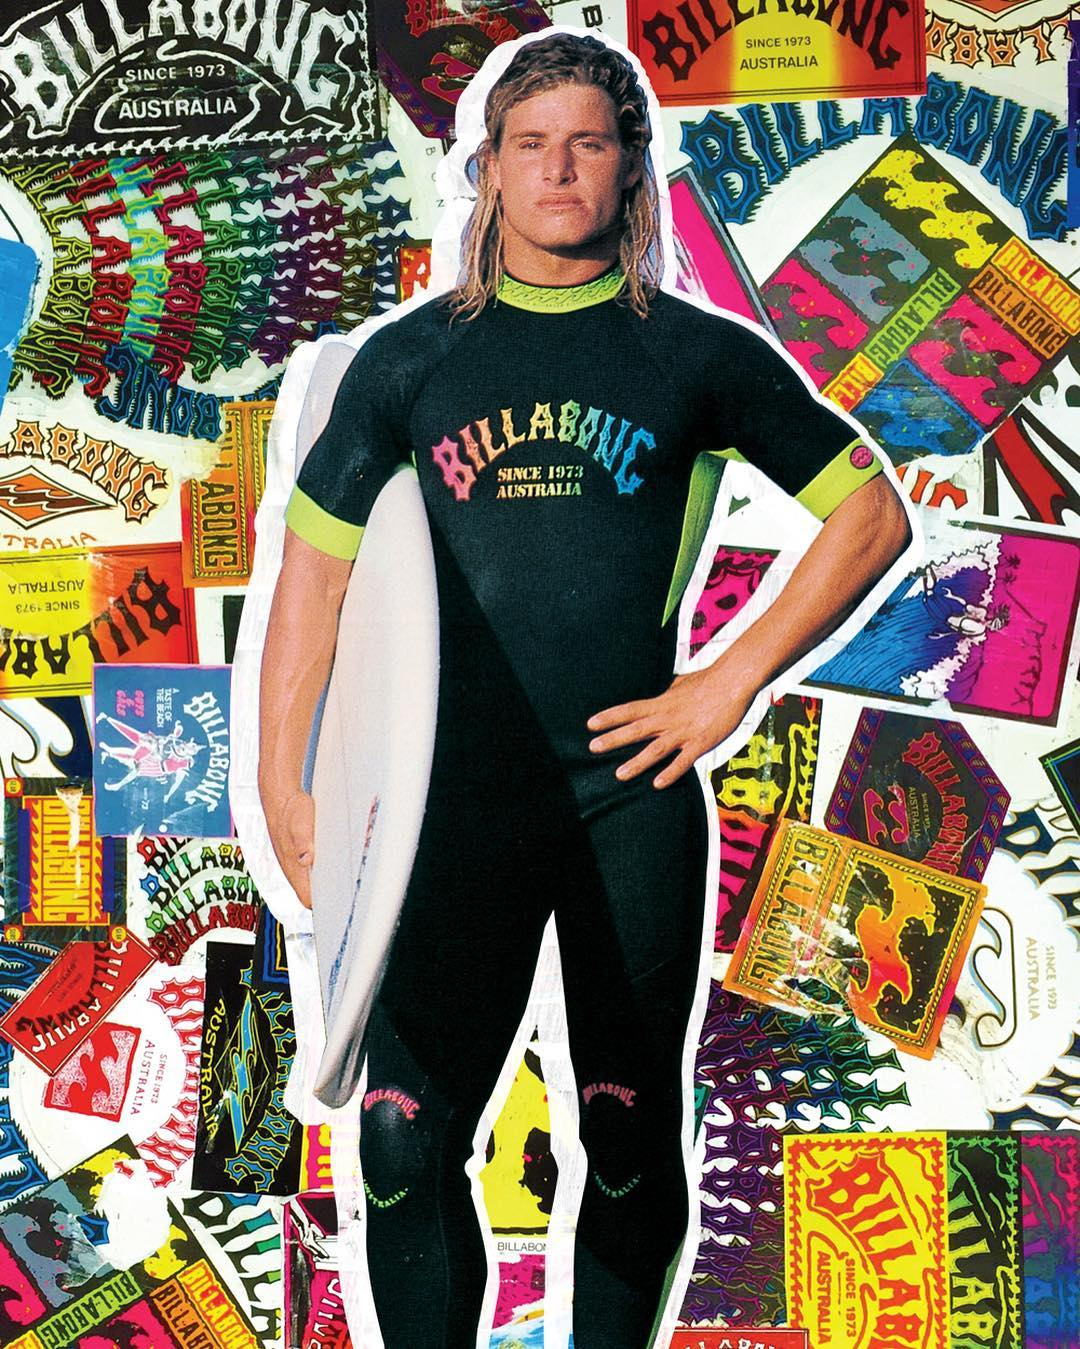 Throwback Thursday/ Flashback Friday to @markocchilupo embracing the Re-Issue. Check out our whole Re-Issue Collection at Billabong.com.